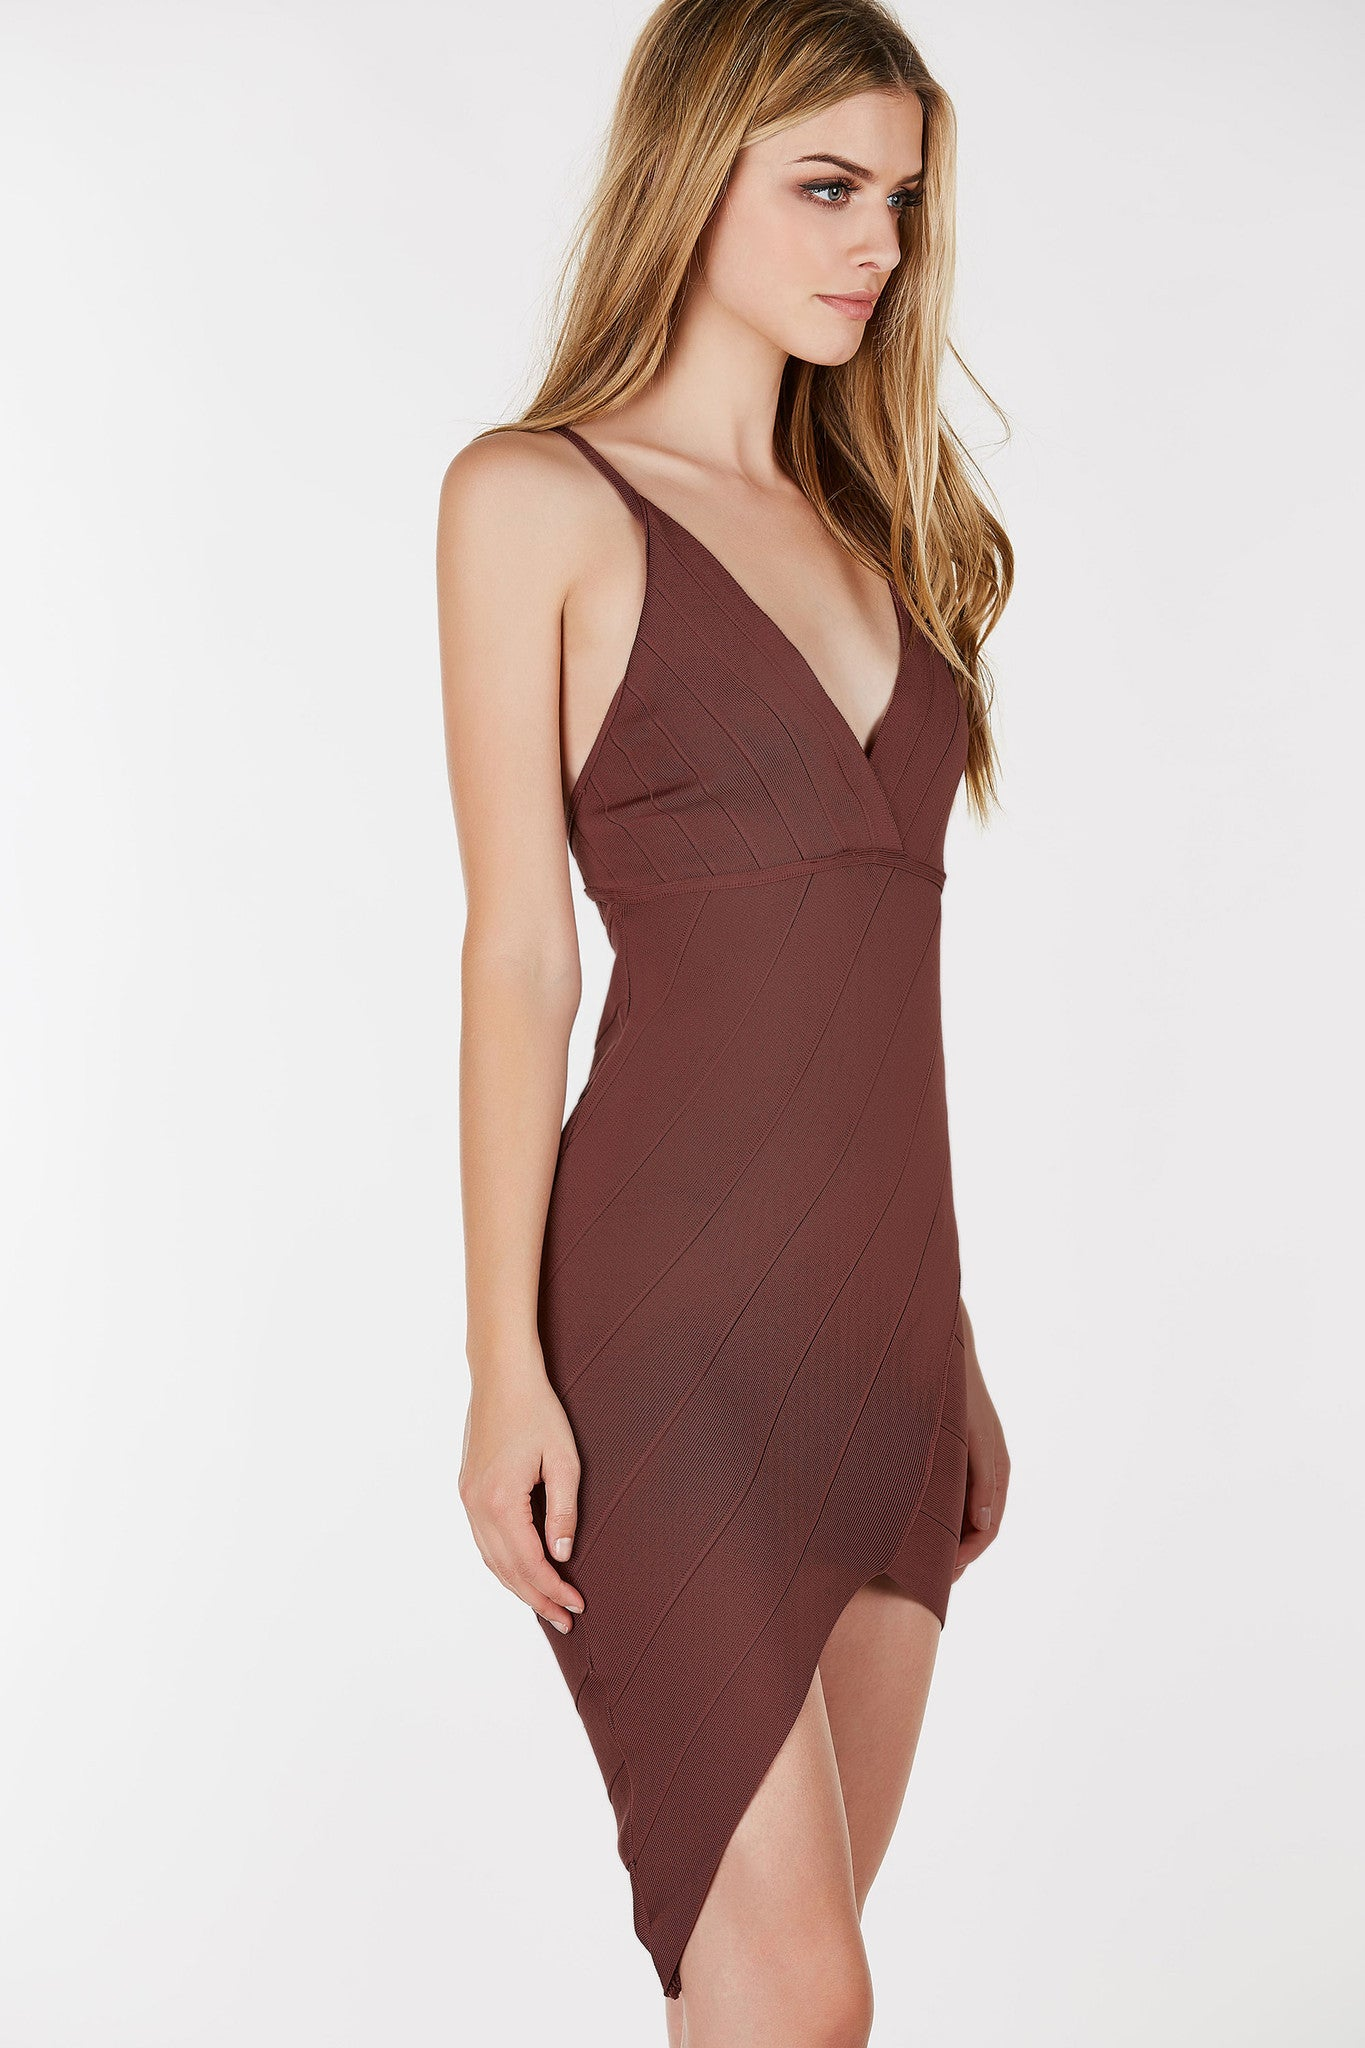 V-neckline bandage dress with asymmetrical hem. Dainty shoulder straps that criss crosses at back with zip closure.